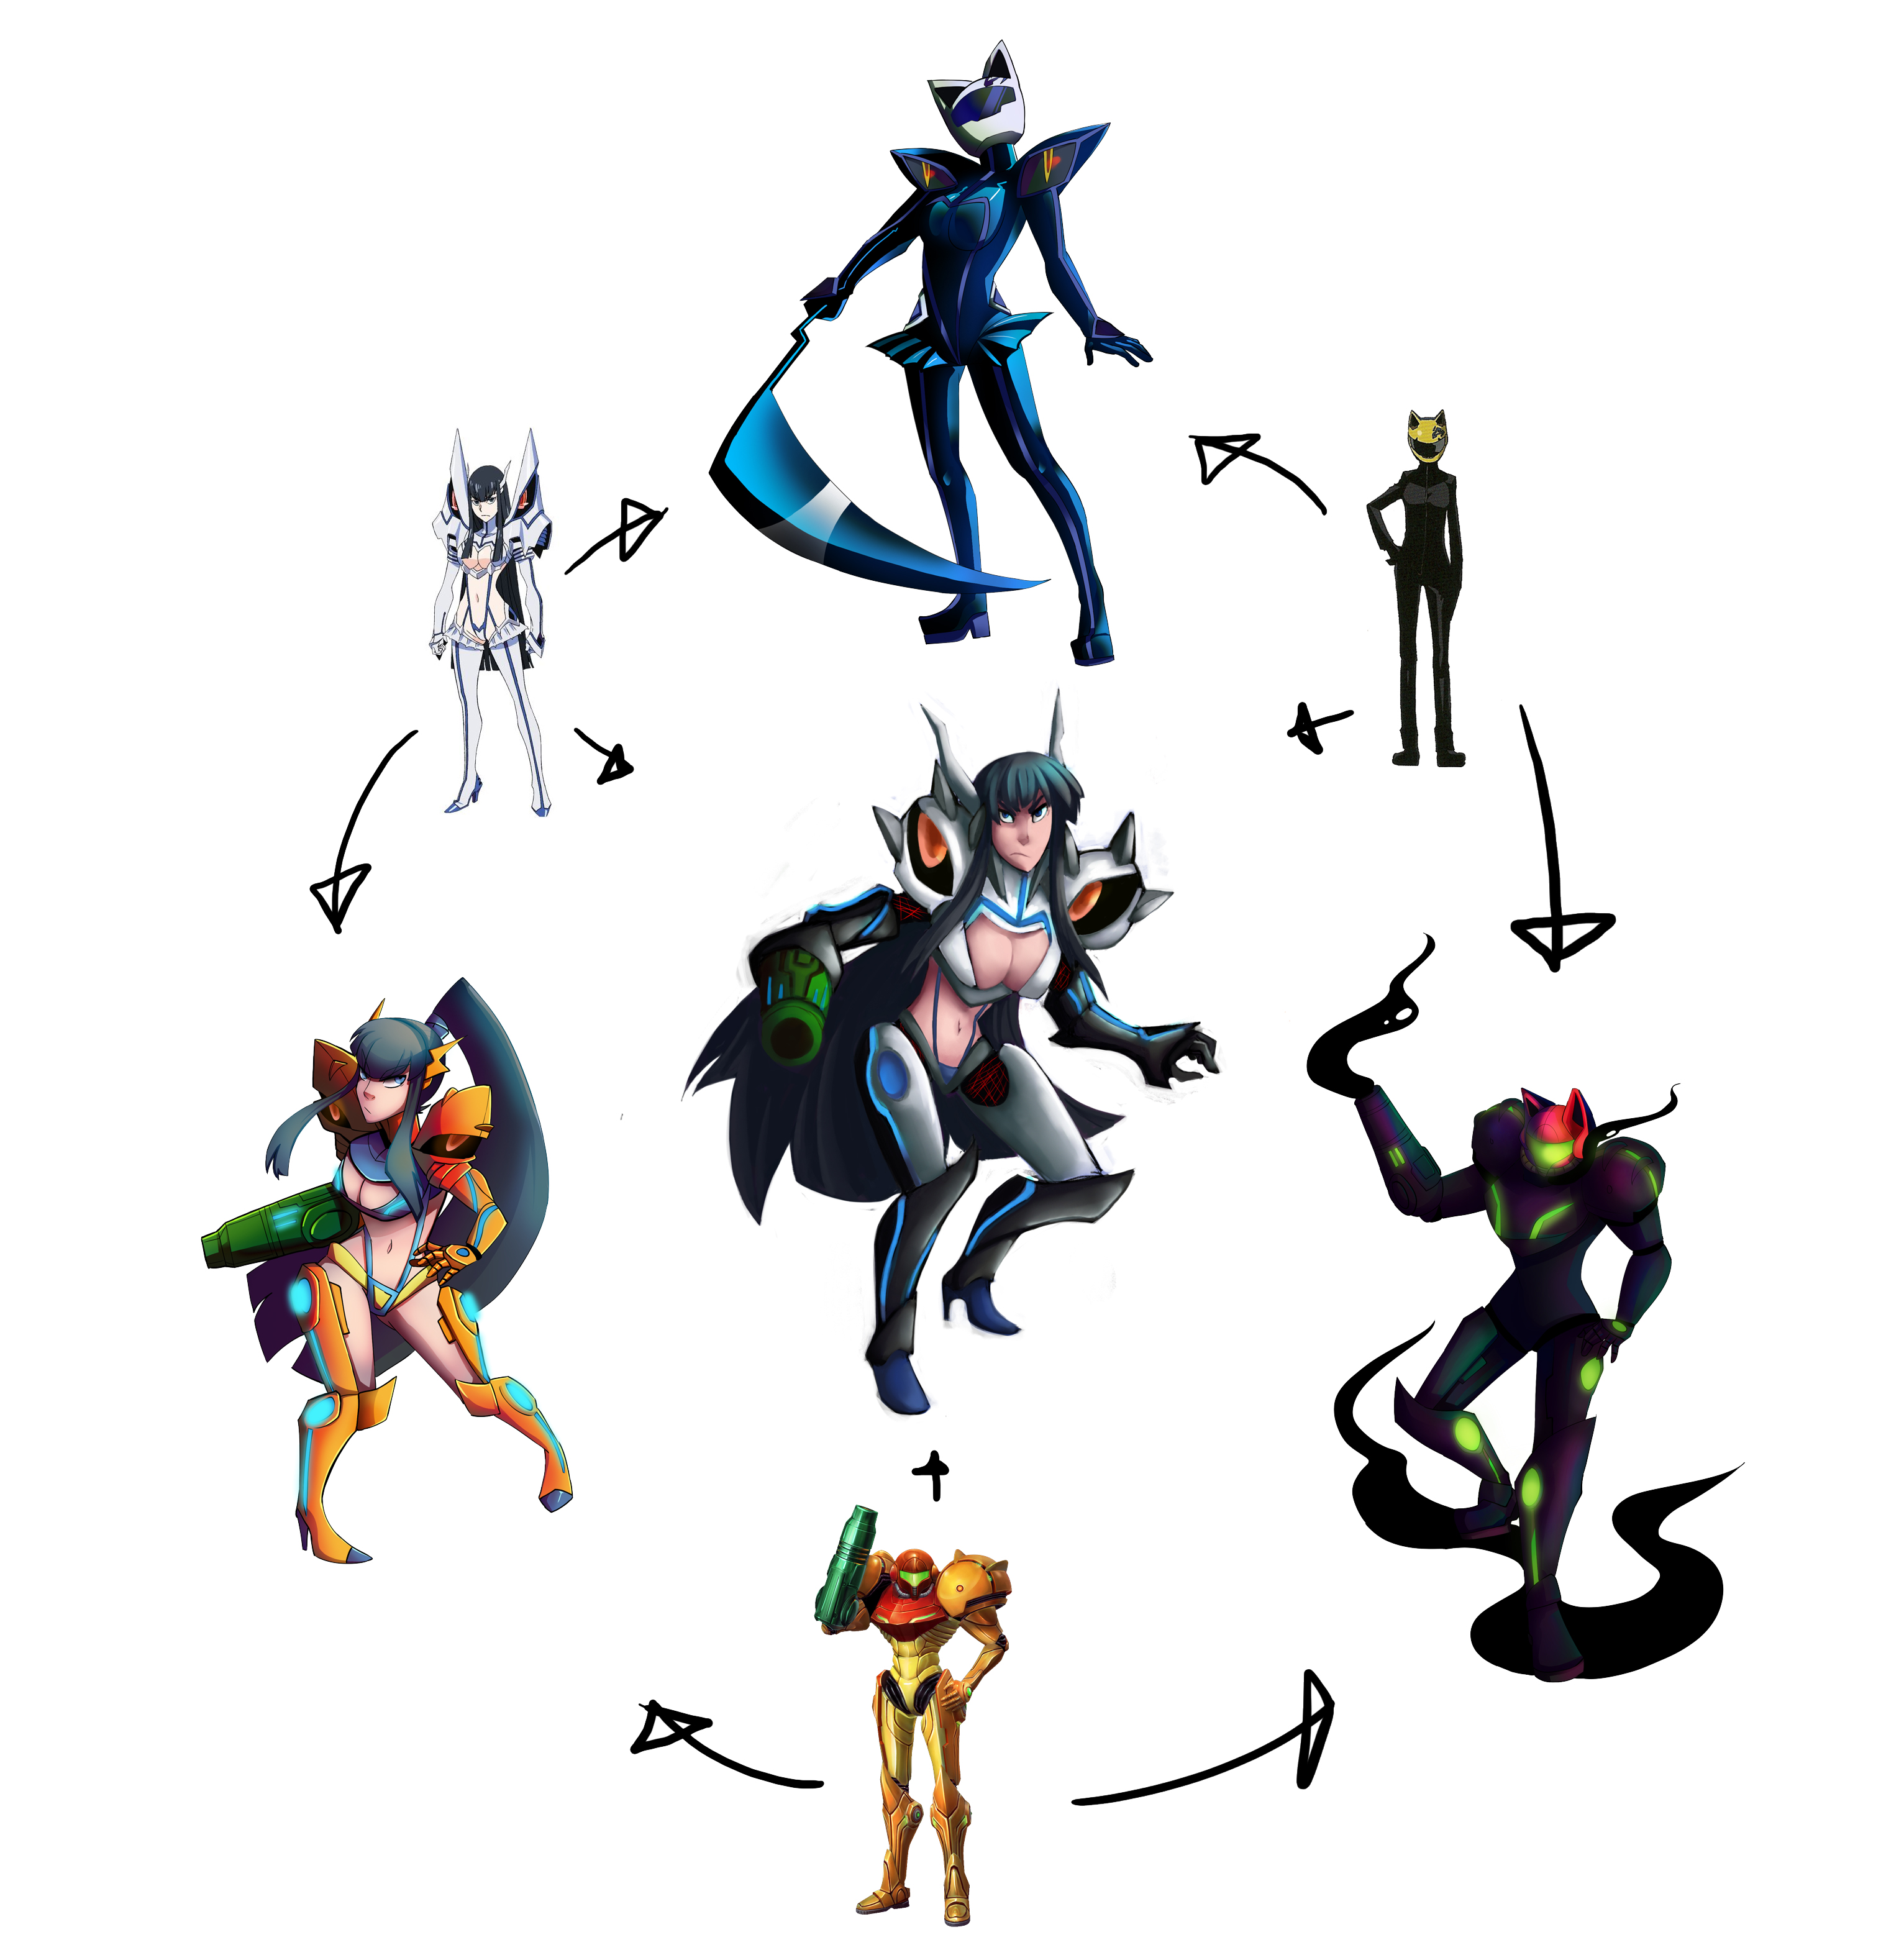 hexafusion_meme__bad_ass_outfits_by_nint